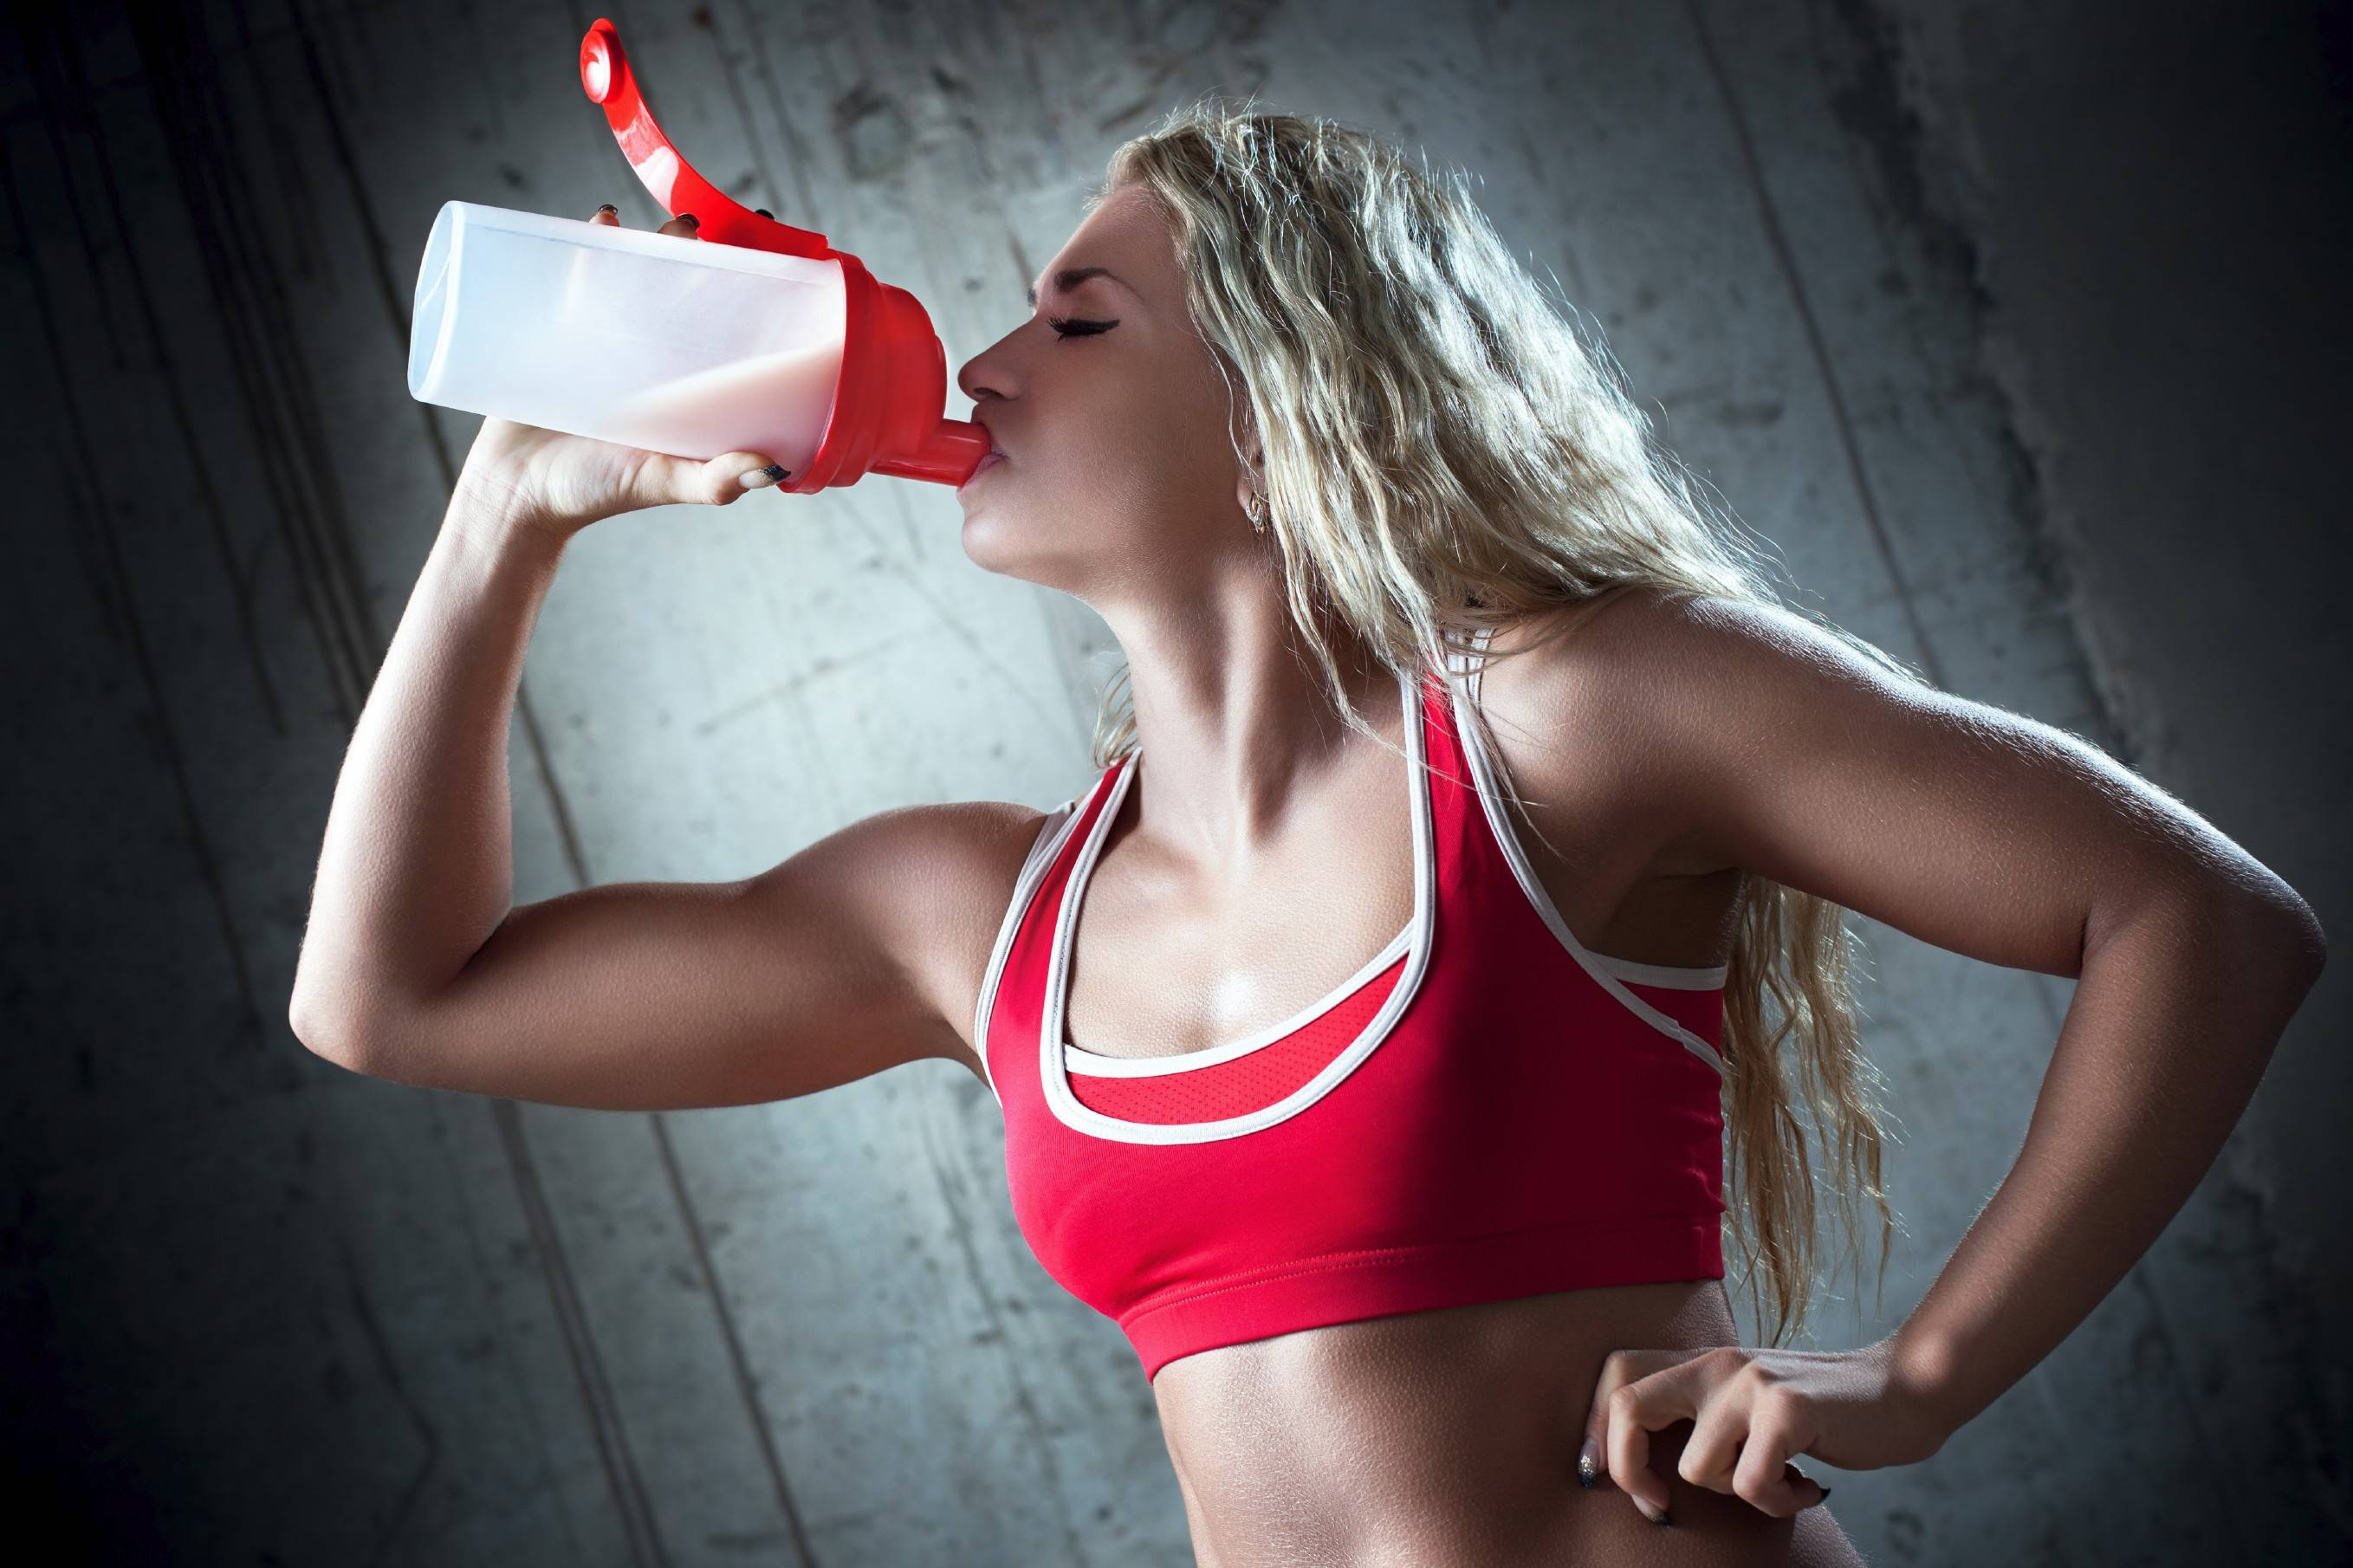 Pre- and post-workout nutrition is extremely important, not only to avoid feeling sick during workouts, but to allow you to perform at your best while maximizing recovery.